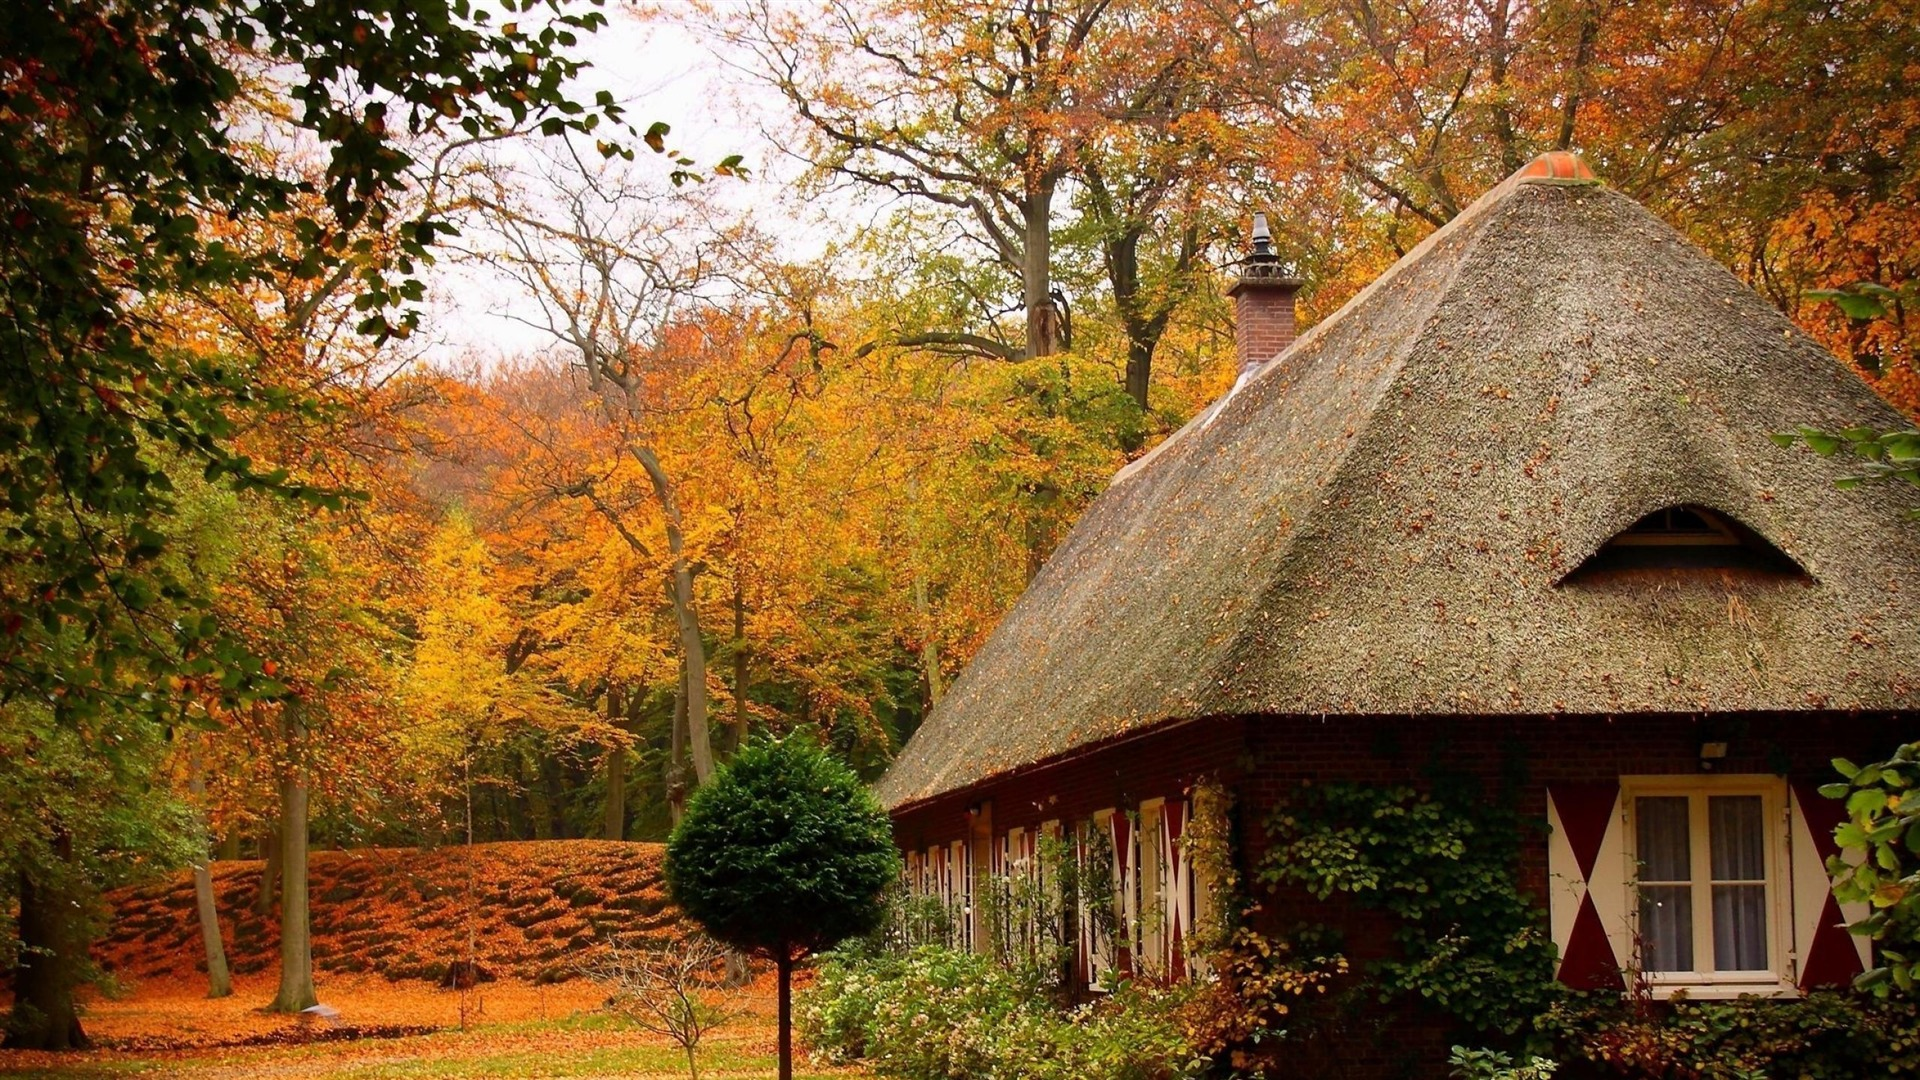 cosy home autumn housenature wallpapers preview